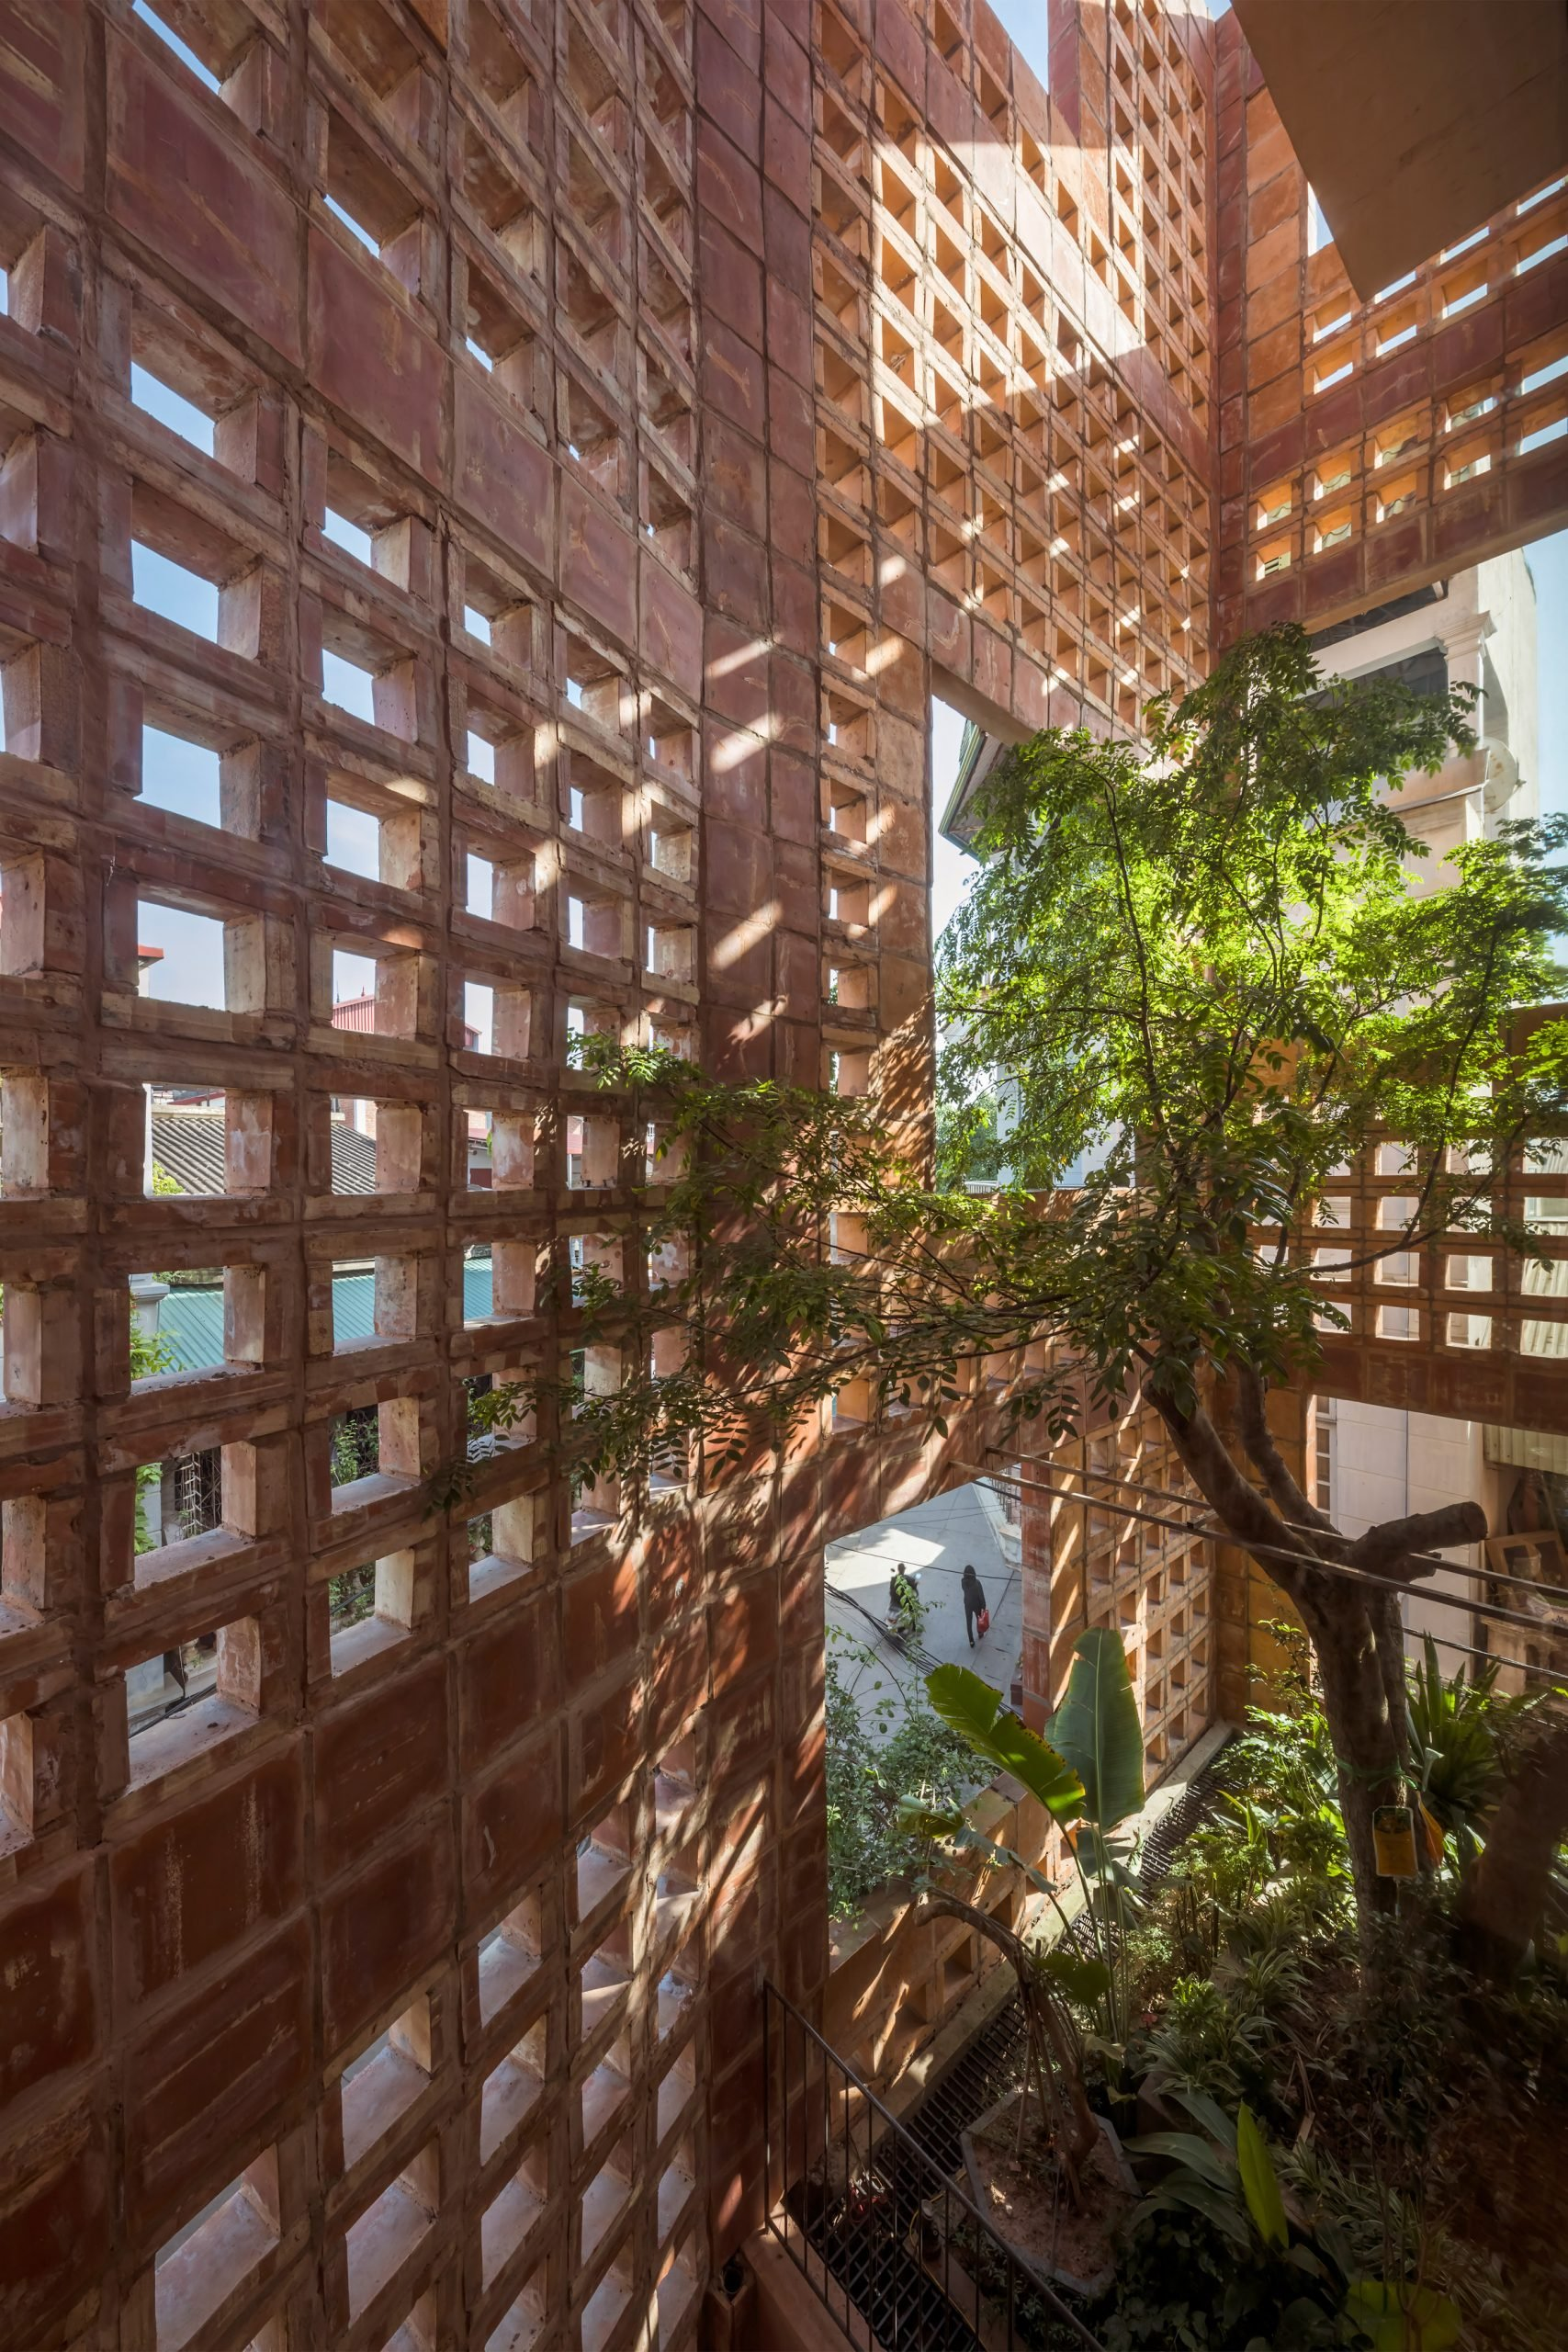 Green spaces fill the space between the wall and home by Vo Trong Nghia Architects